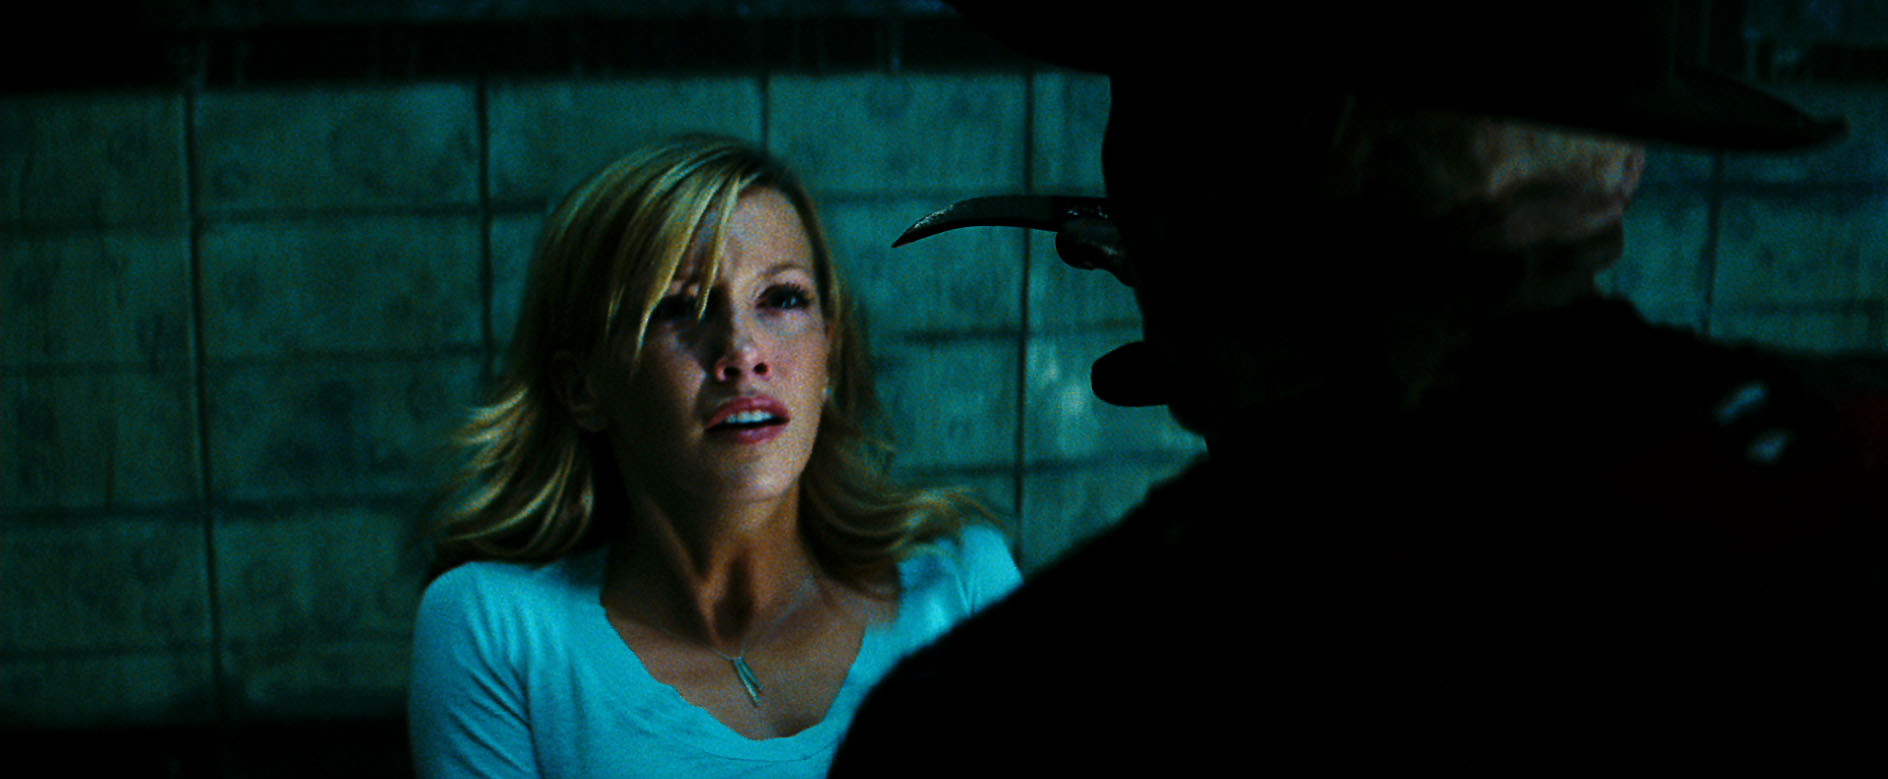 a nightmare on elm street movie image 18 Ally Walker and Tim DeKay play a married couple who've stopped having sex.